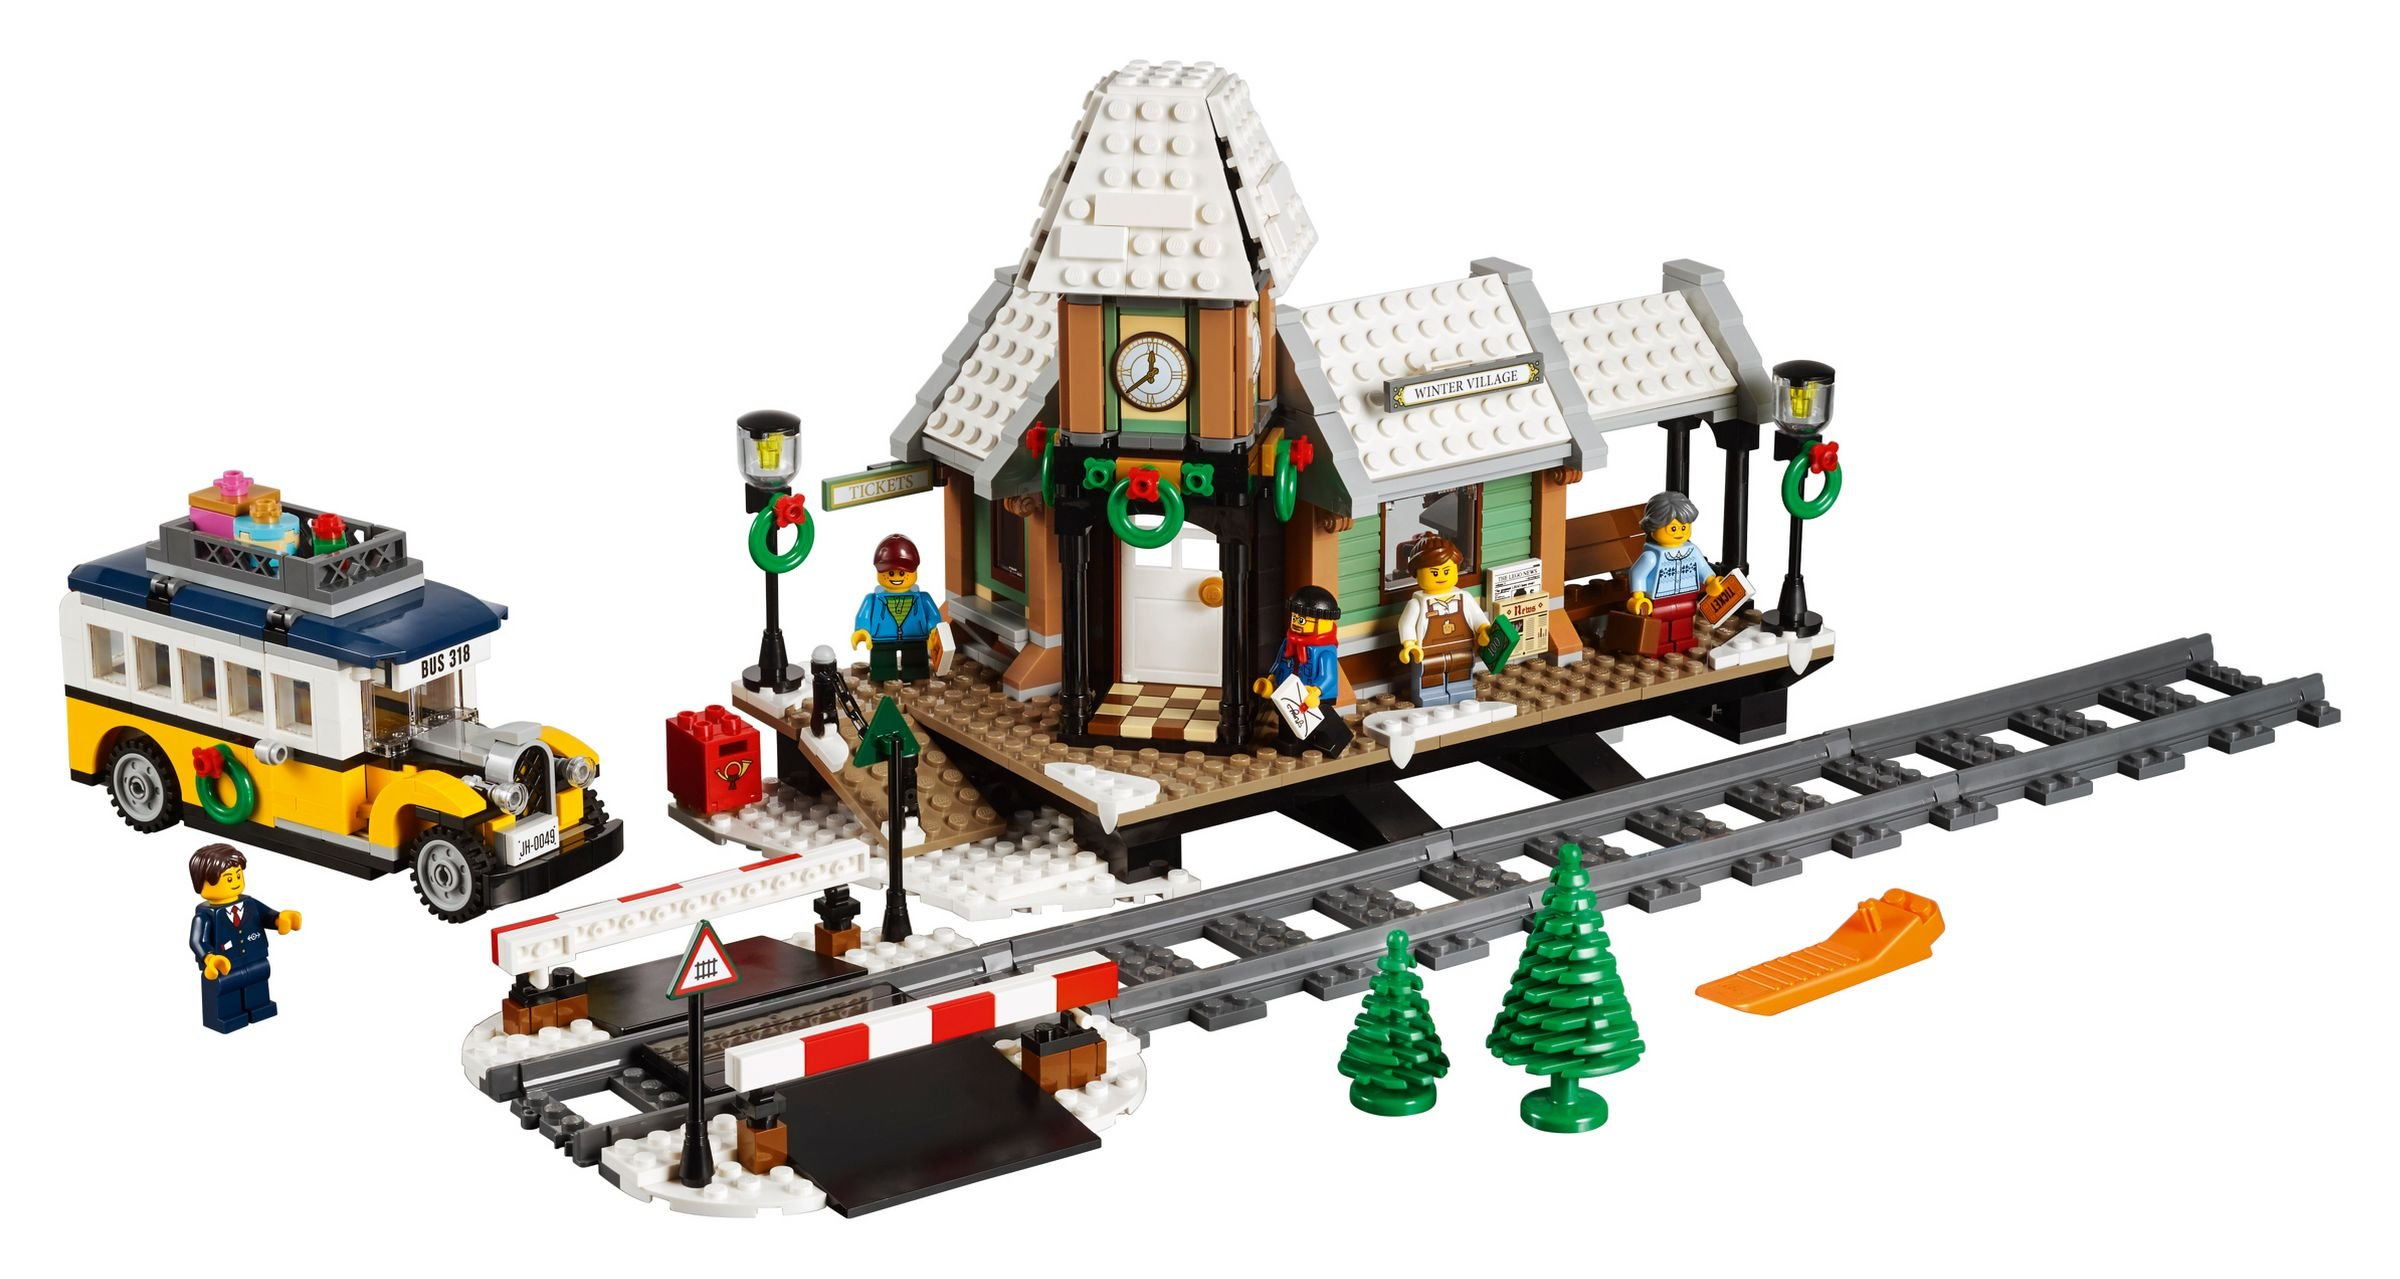 LEGO Advanced Models 10259 Winterlicher Bahnhof